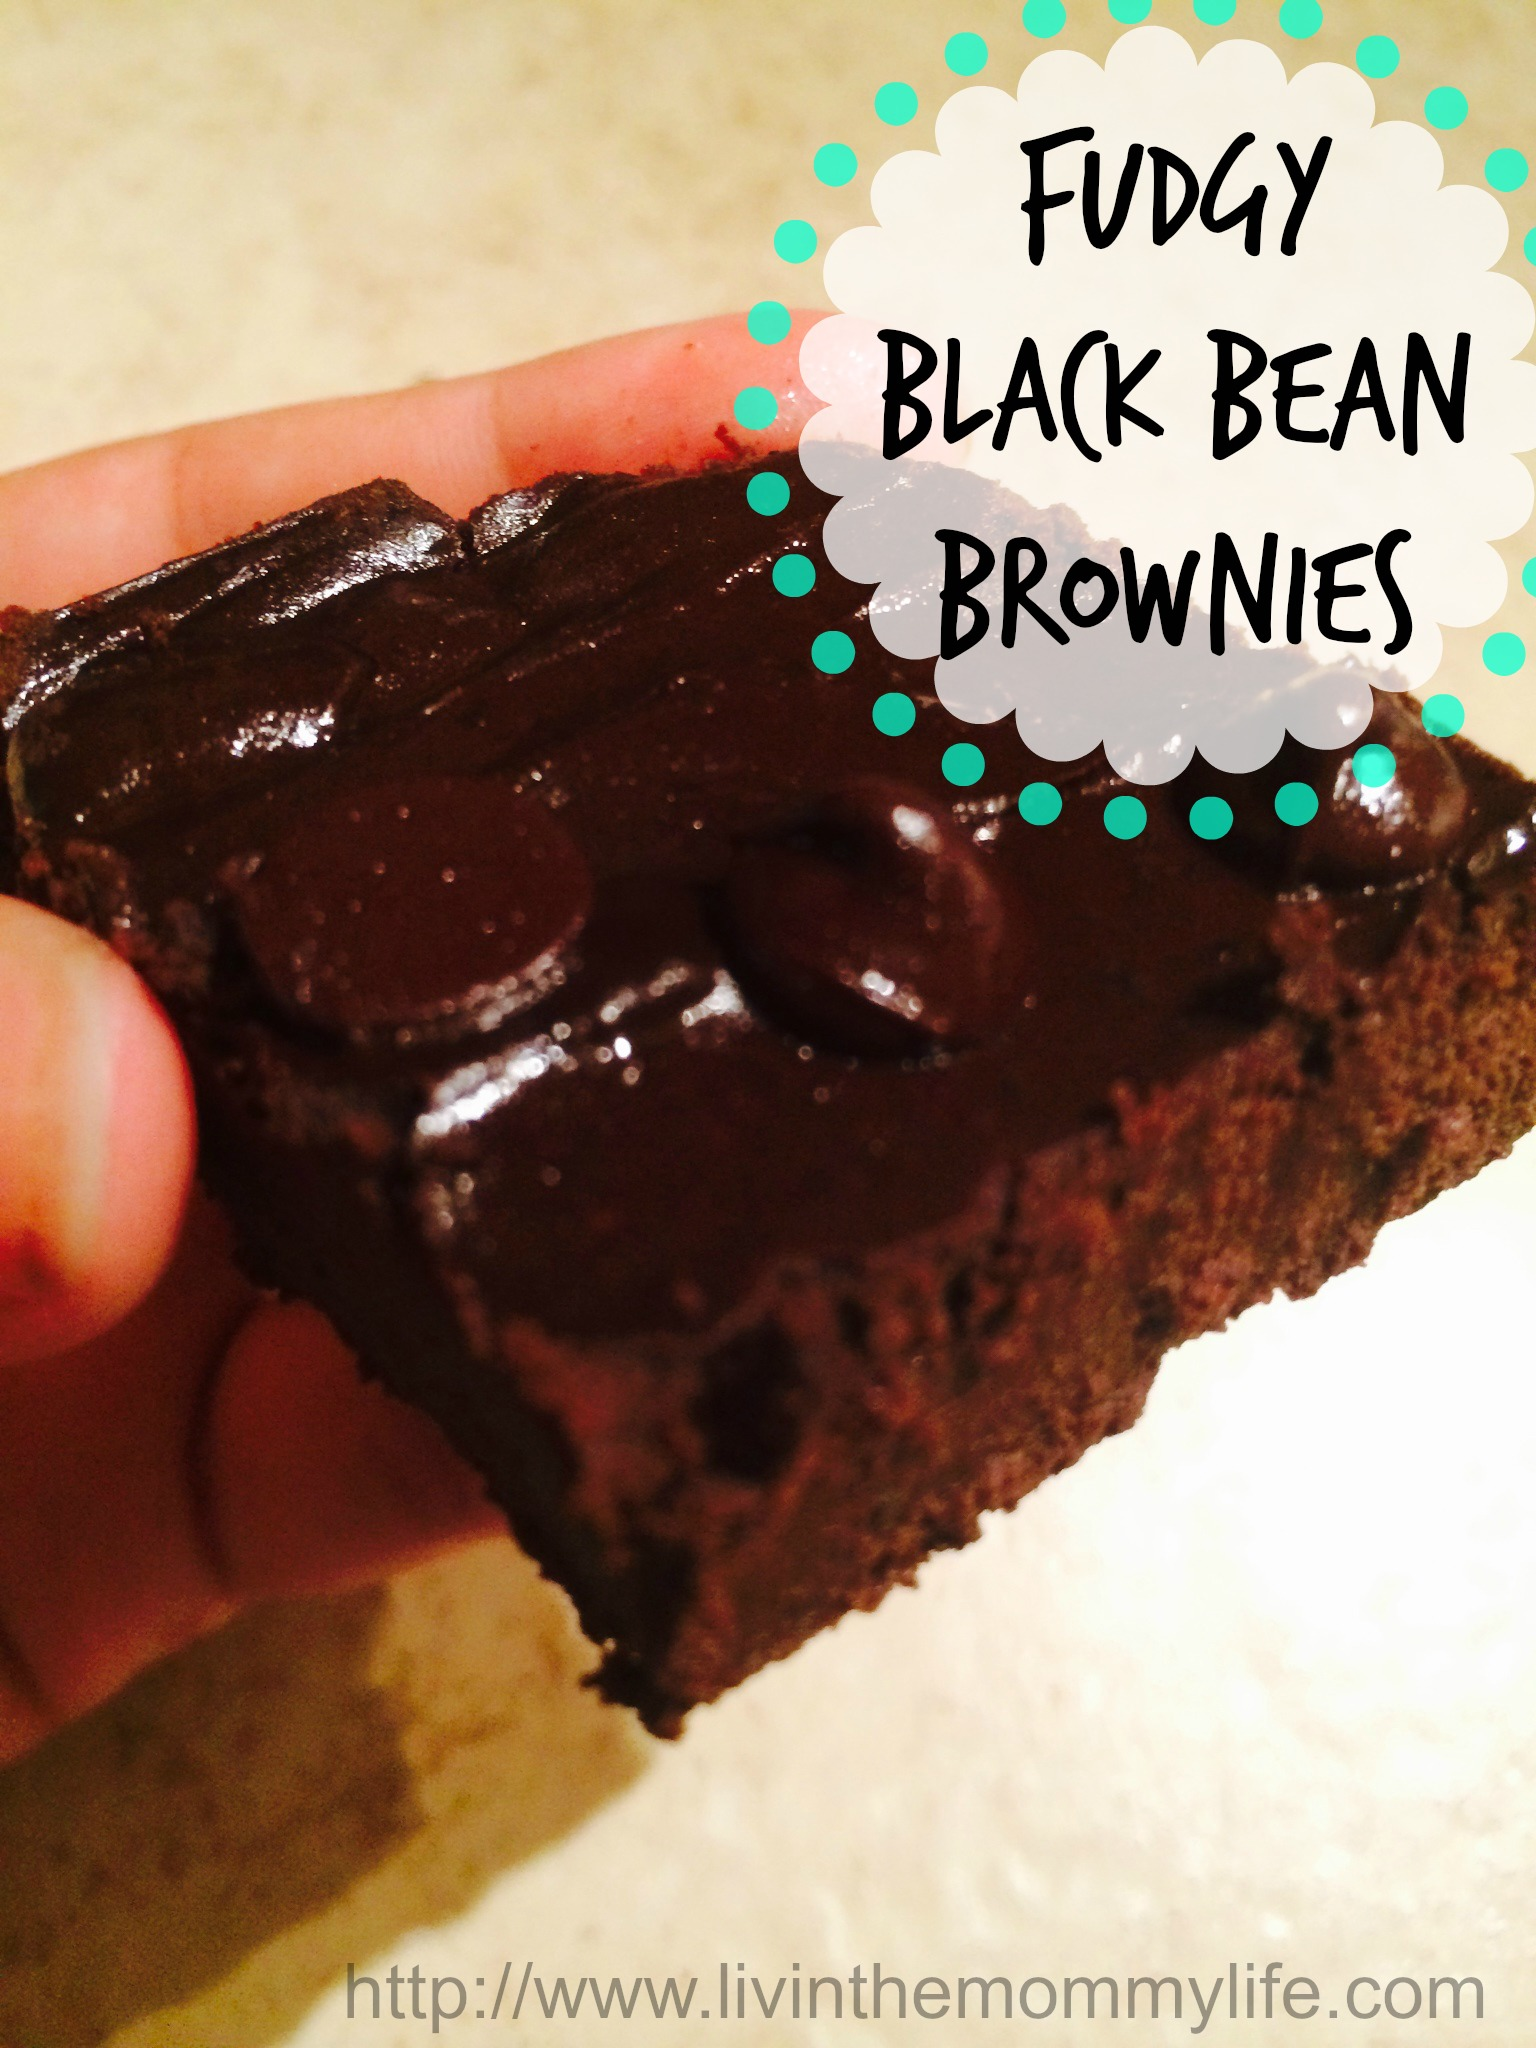 Fudgy Black Bean Brownies Recipe